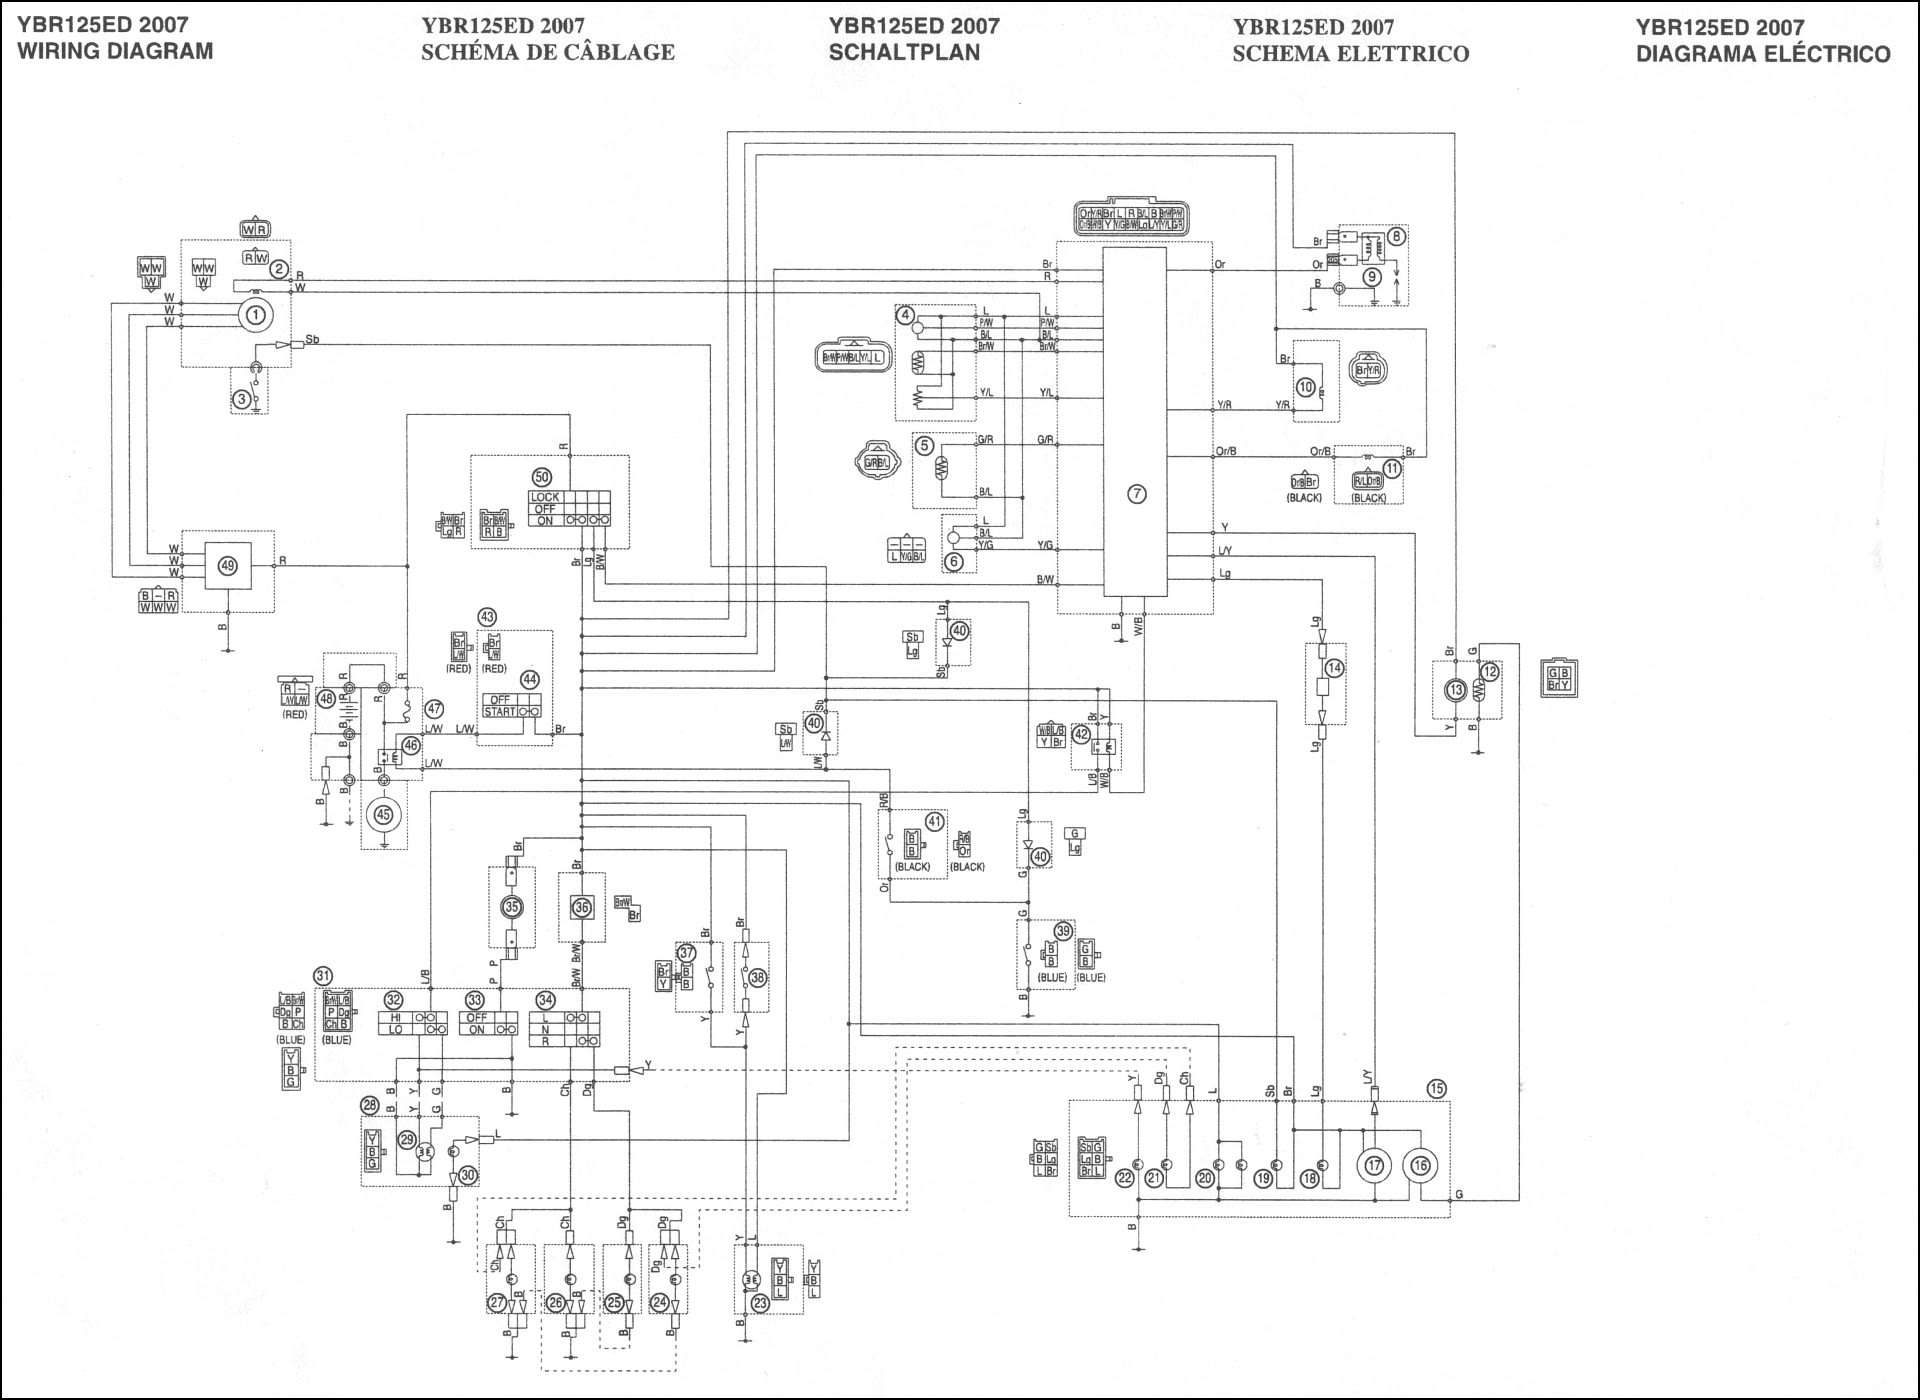 Yamaha ybr wiring diagram yamaha wiring diagrams instructions 201409 708af84f13d014f8fba88681fbc6e14d yamaha ybr wiring diagram at ww1eeautoresponder cheapraybanclubmaster Gallery